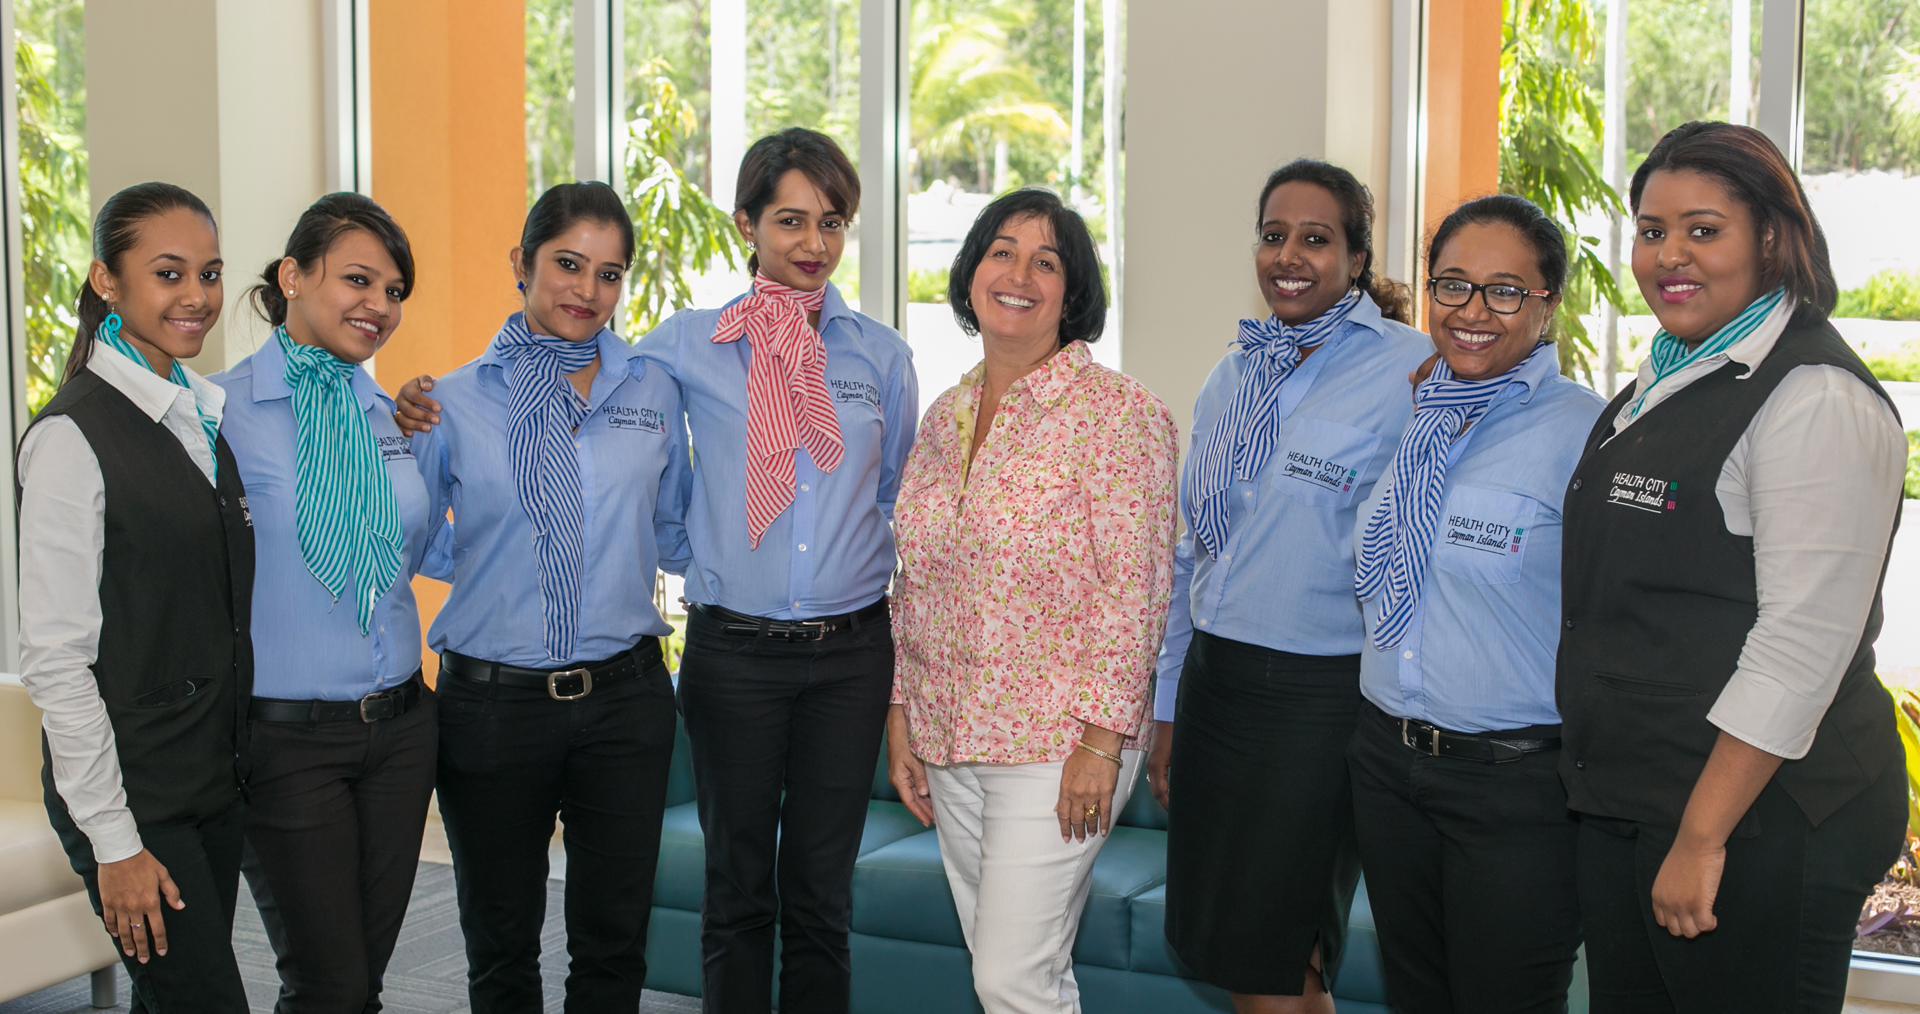 Health City Patient Care Team with Leader